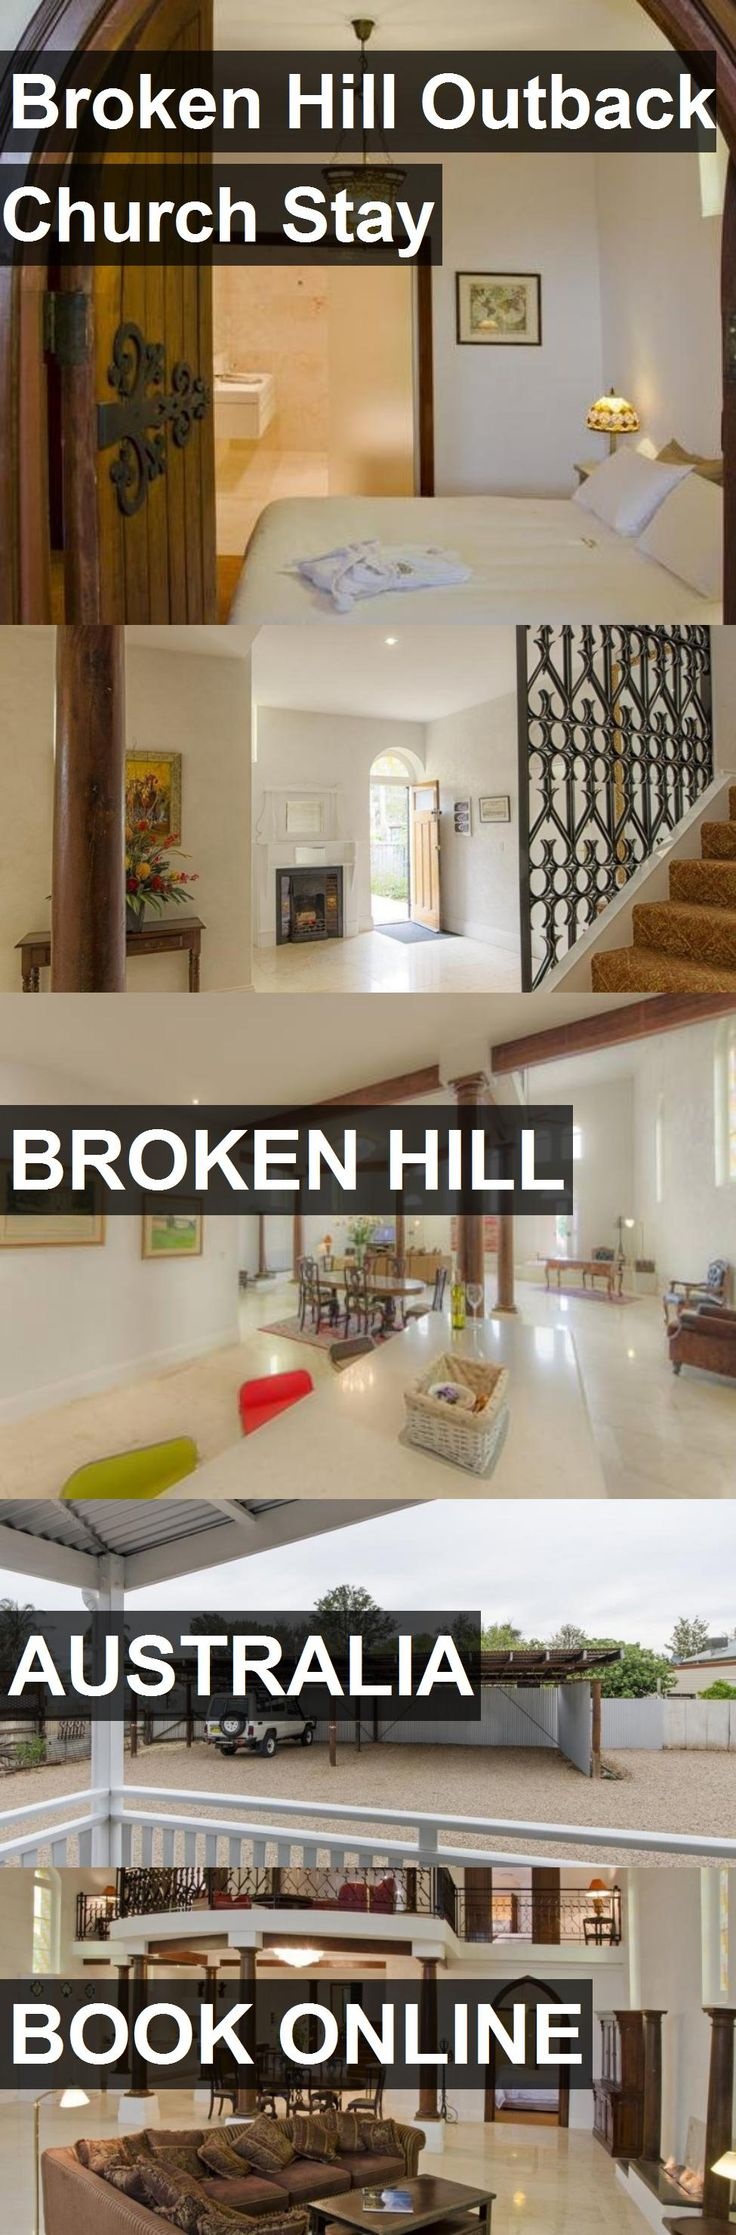 Hotel Broken Hill Outback Church Stay in Broken Hill, Australia. For more information, photos, reviews and best prices please follow the link. #Australia #BrokenHill #travel #vacation #hotel